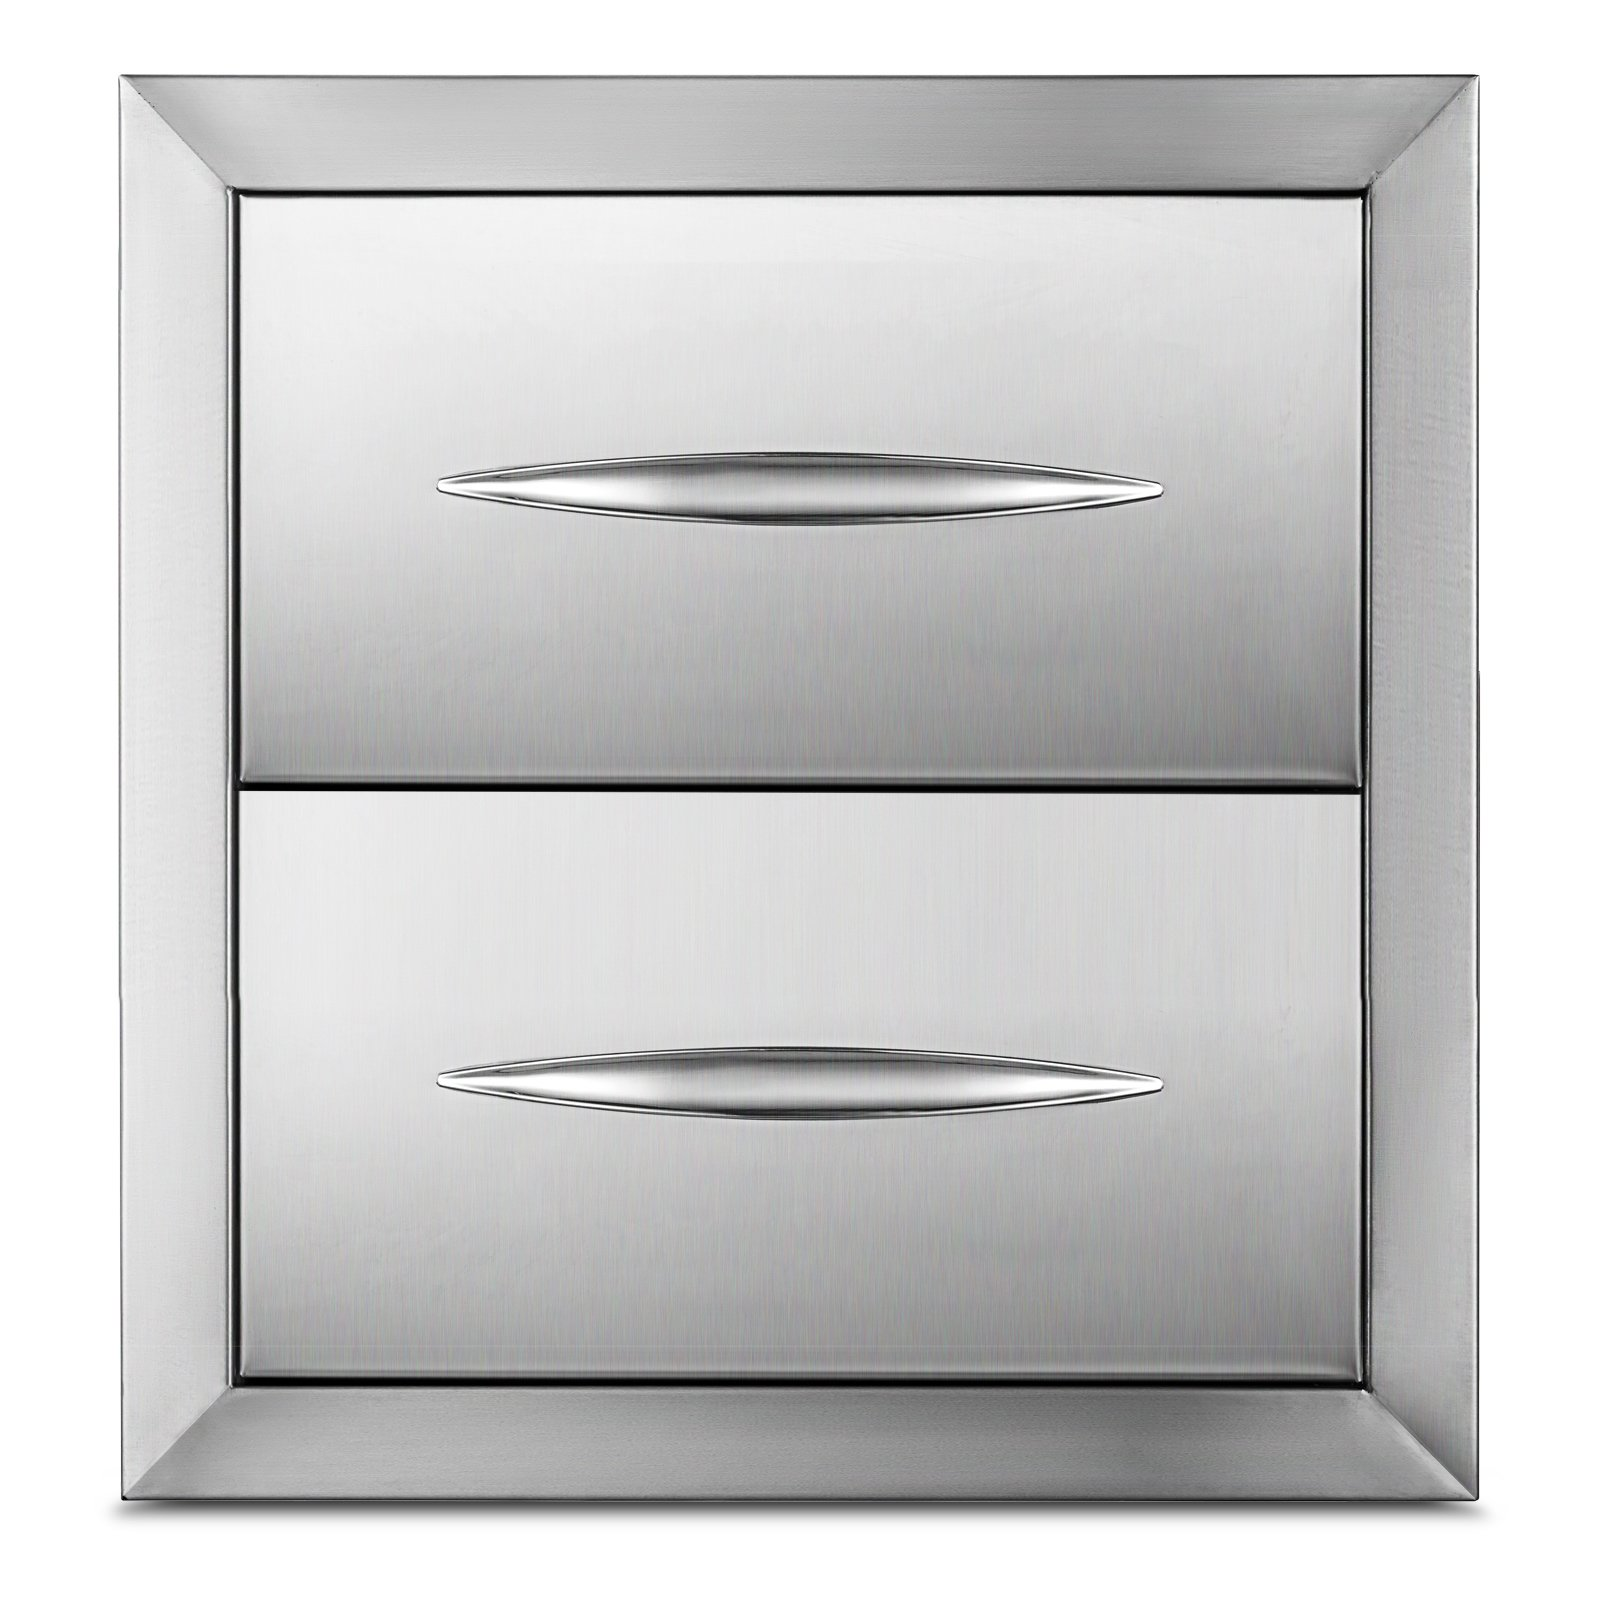 Happybuy Outdoor kitchen drawer 14.38''x14'' Stainless steel BBQ Island Drawer storage with Chrome Handle Double Access Drawer Flush Mount Sliver Double Access Drawer (Outdoor kitchen Drawer 14.38''x14'')